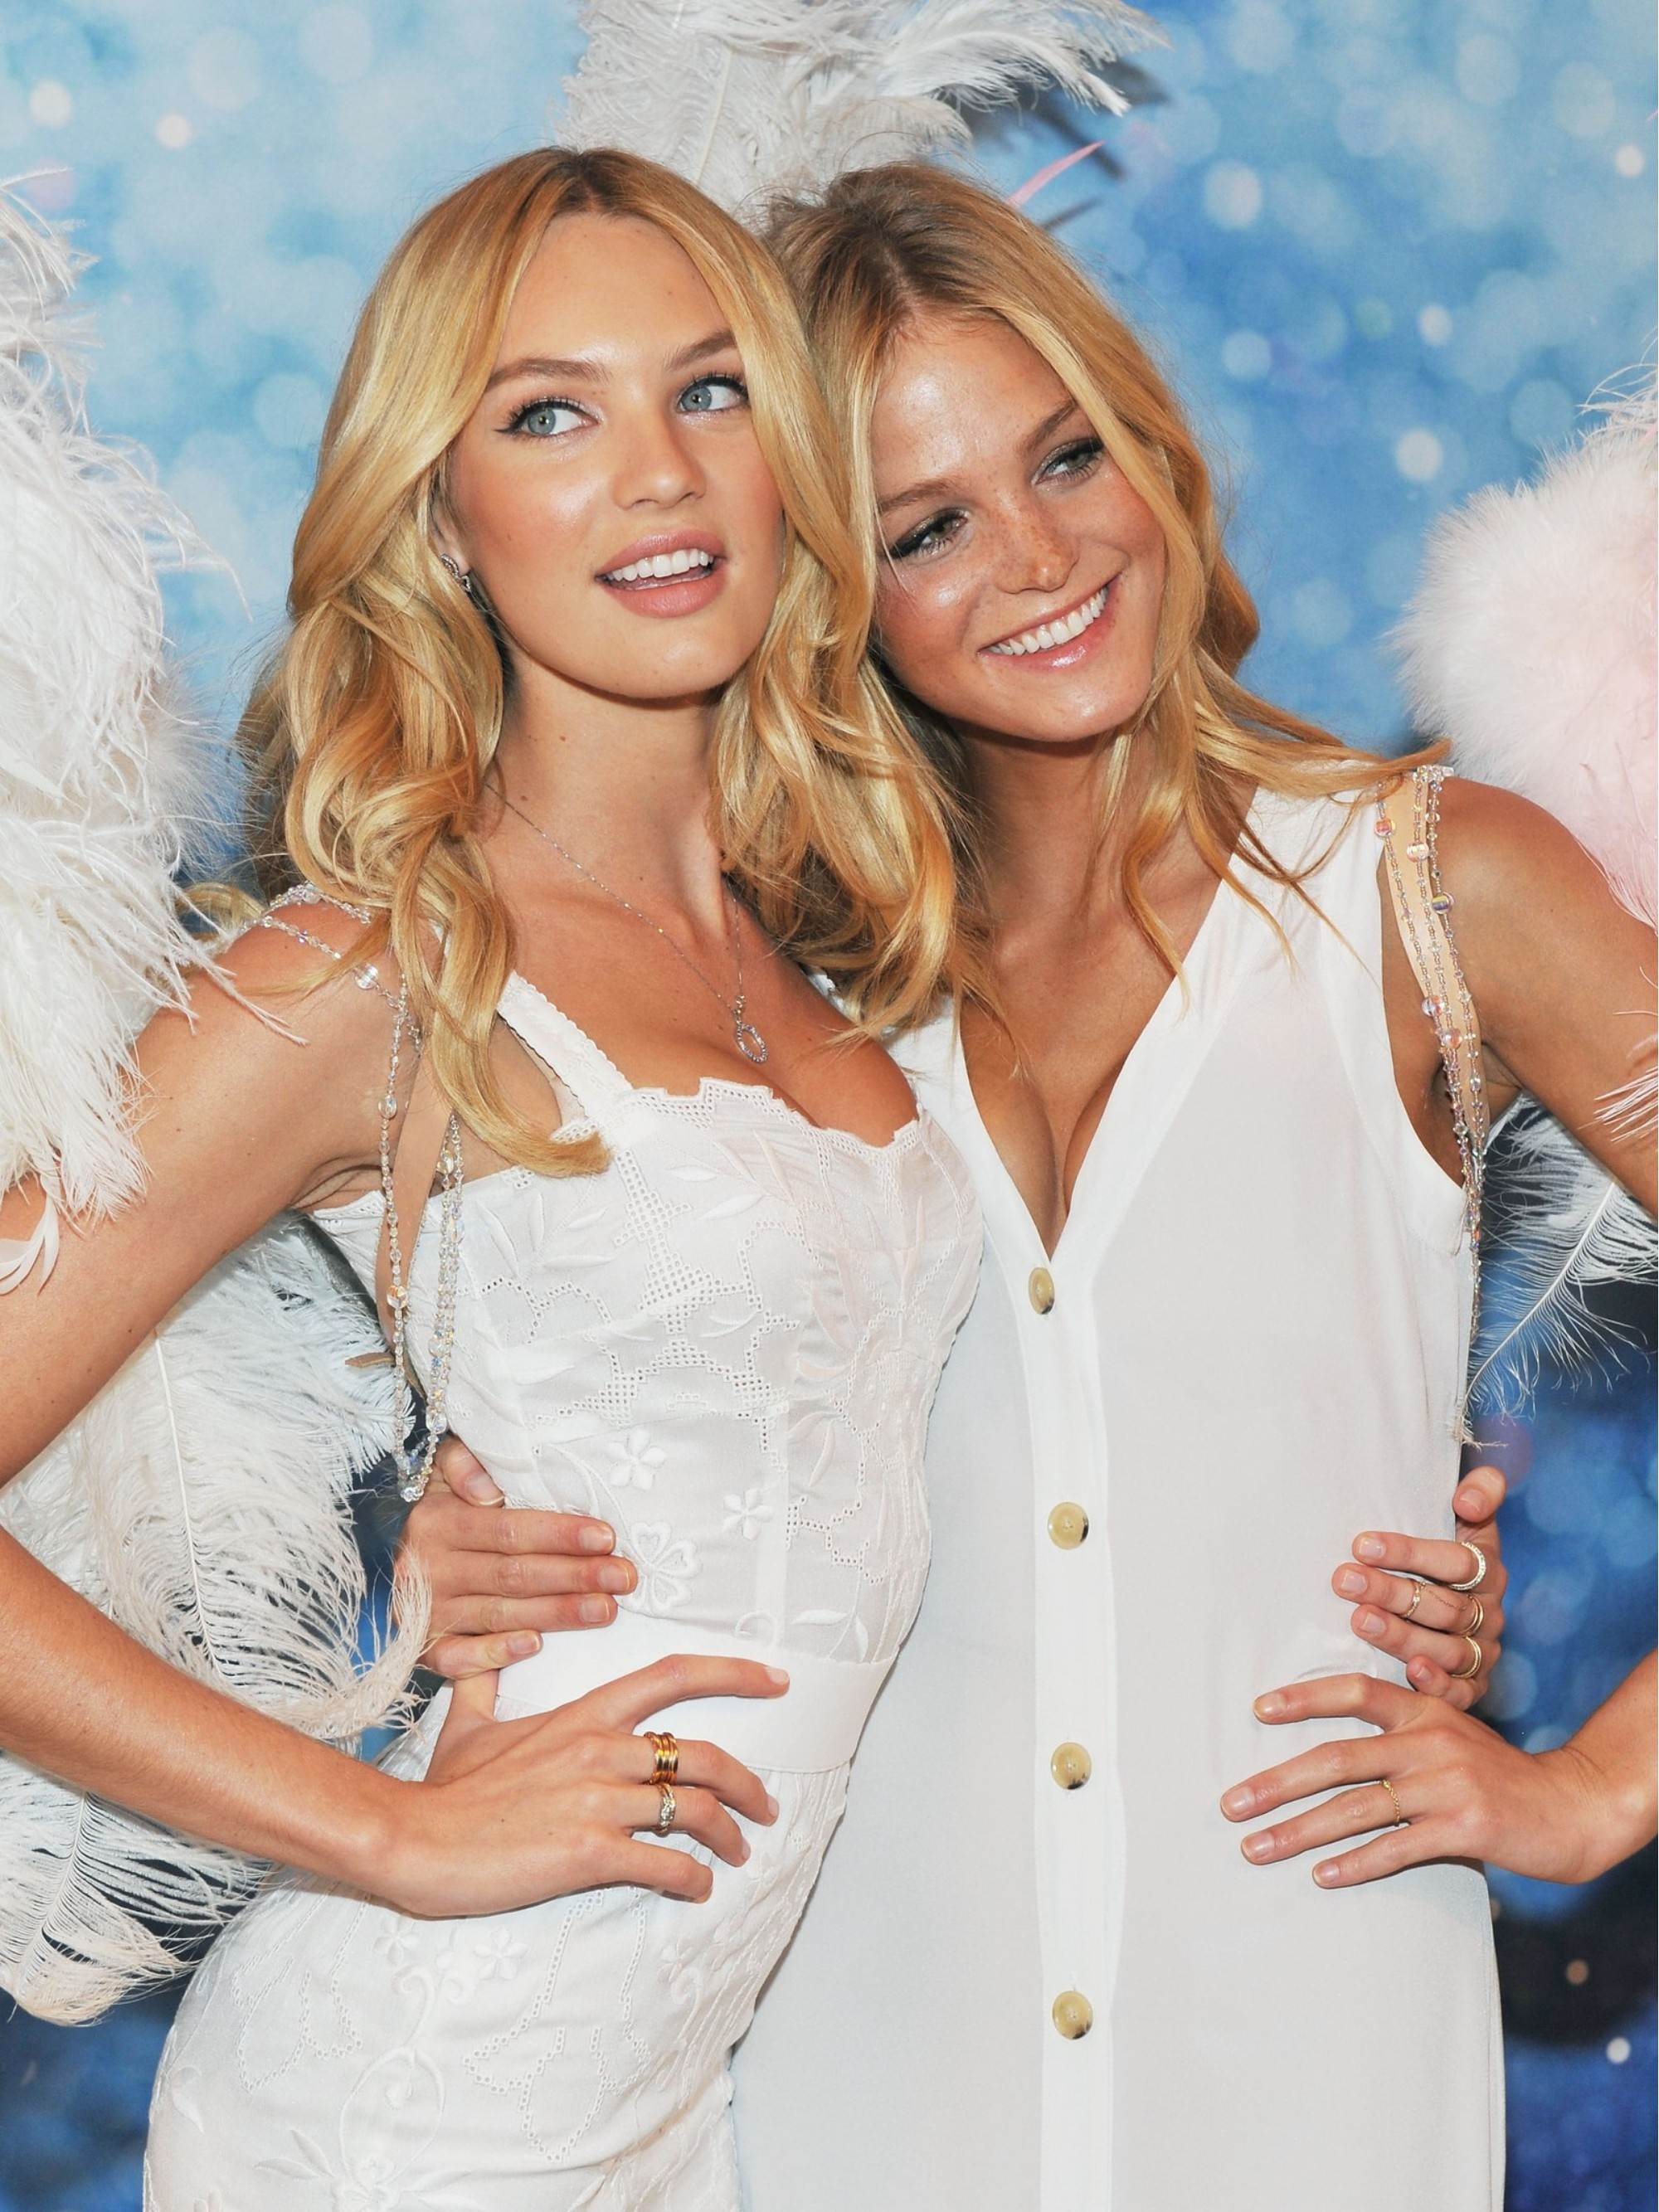 Candice Swanepoel And Erin Heatherton Hot In White Dress